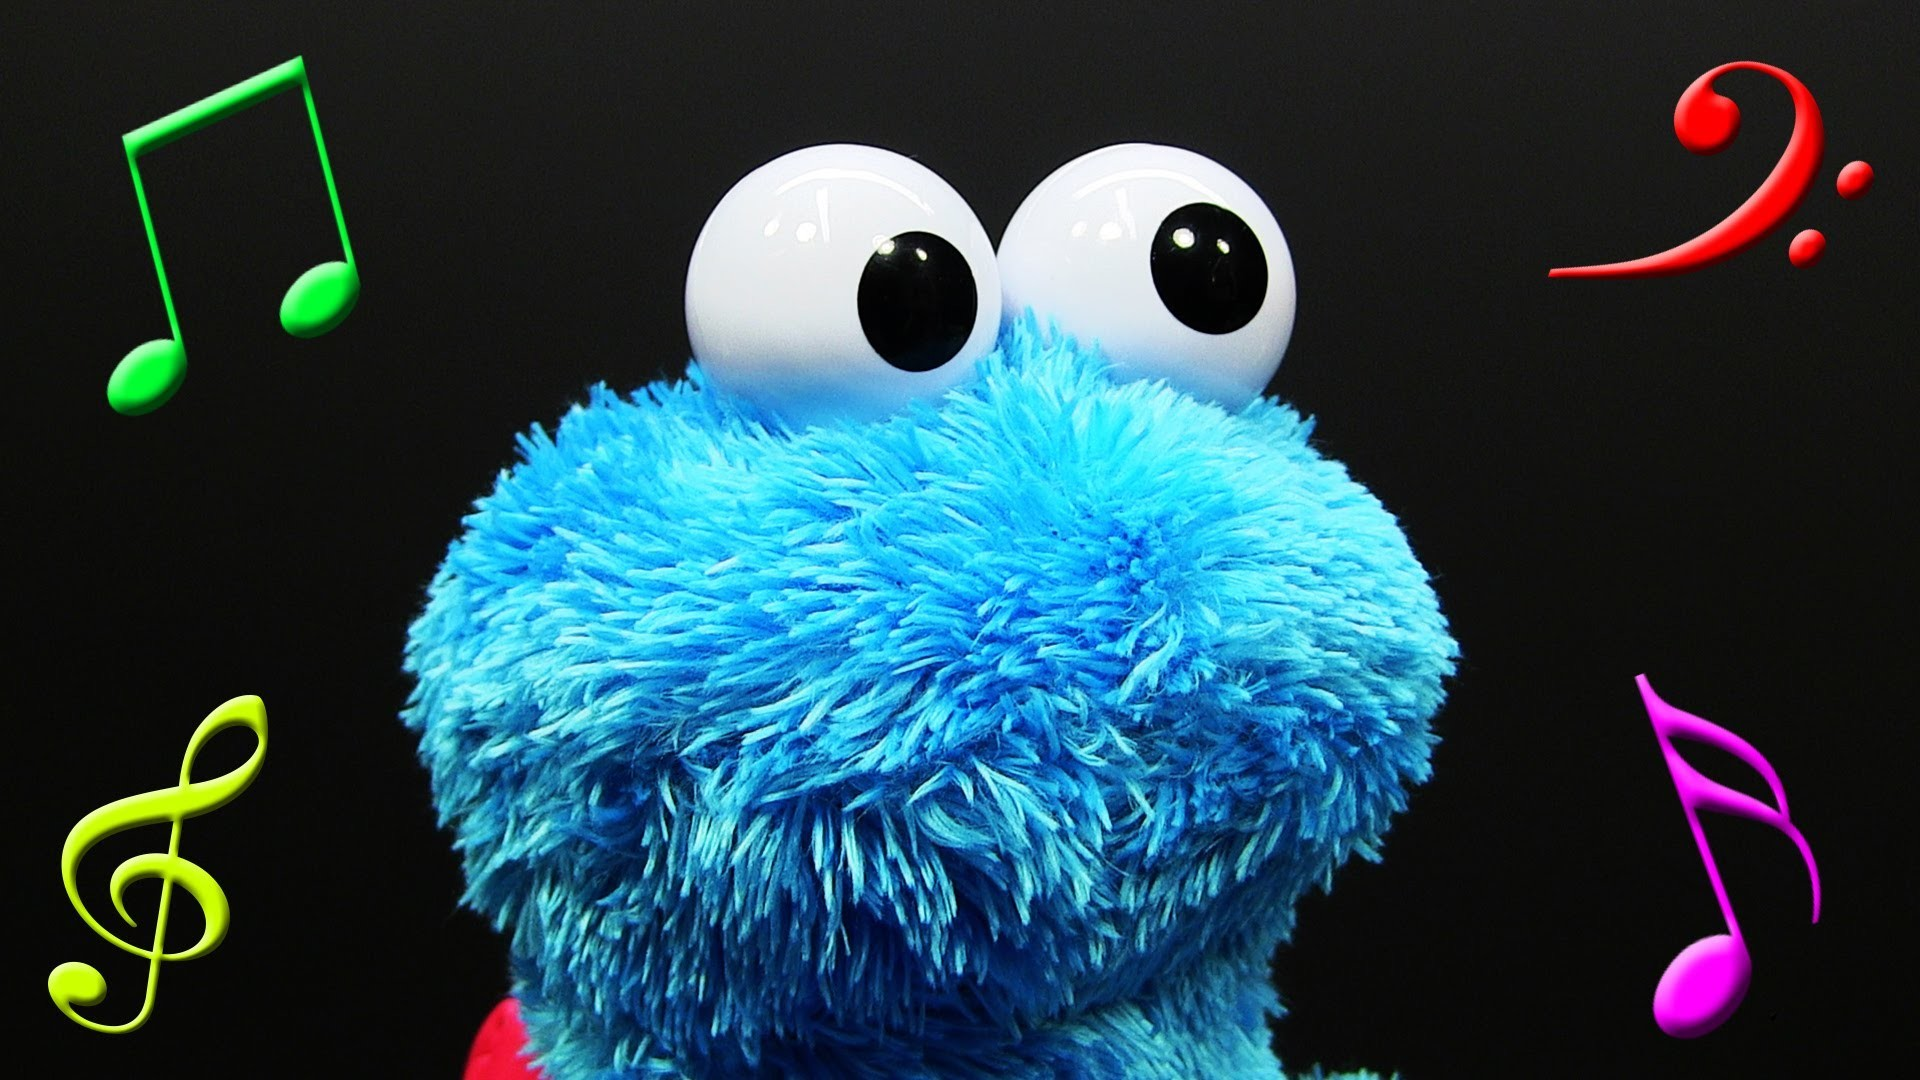 1920x1080 High Resolution Cookie Monster Music Wallpaper Hd 1080p Full Size .